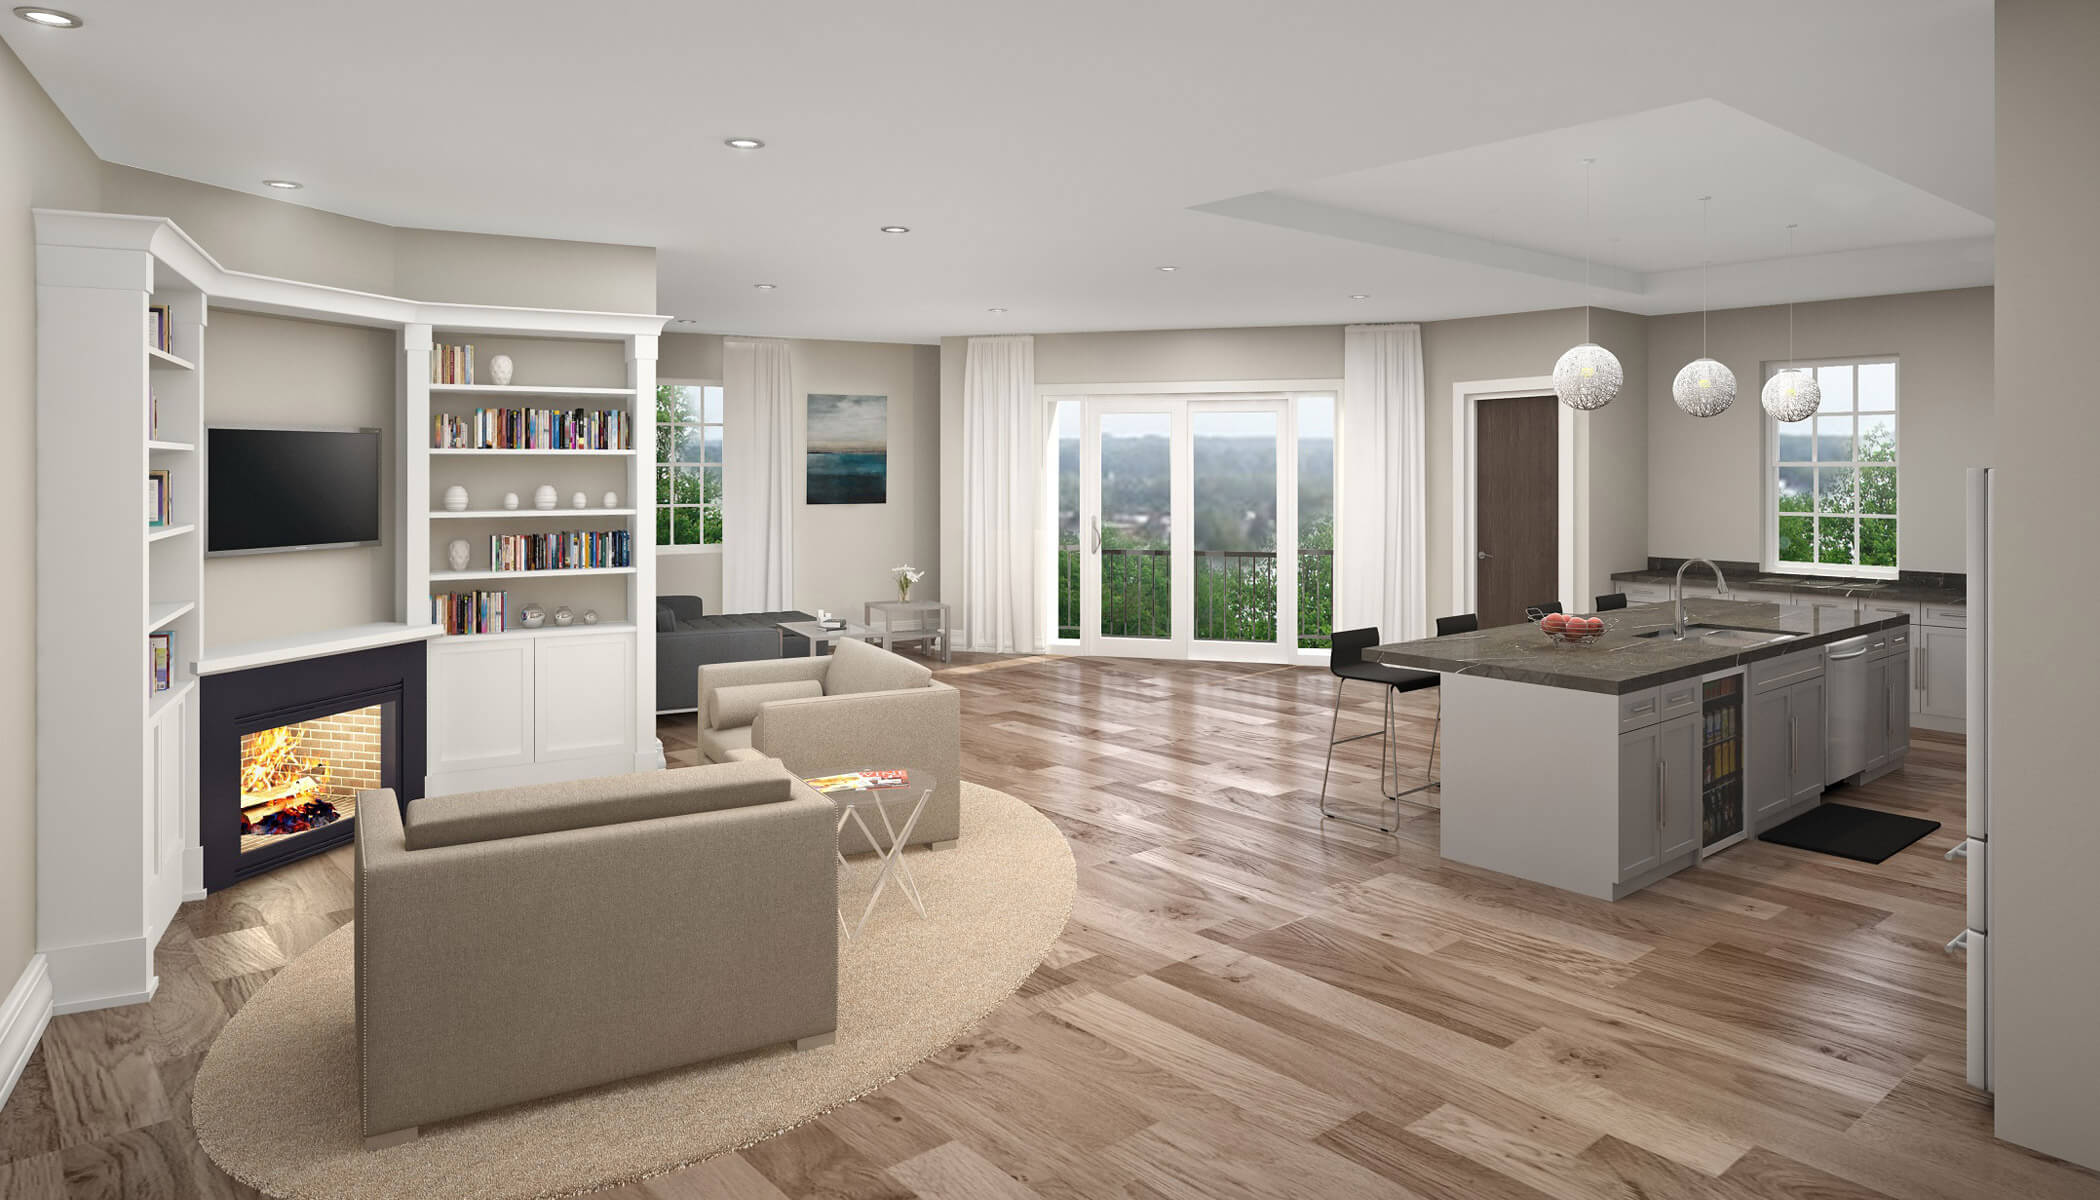 Here is a rendering of a view of an interior of Bevilacqua Development's Lymstone Lofts luxury apartments on the Amherst-Williamsville border. The first tenants are set to move in next week.